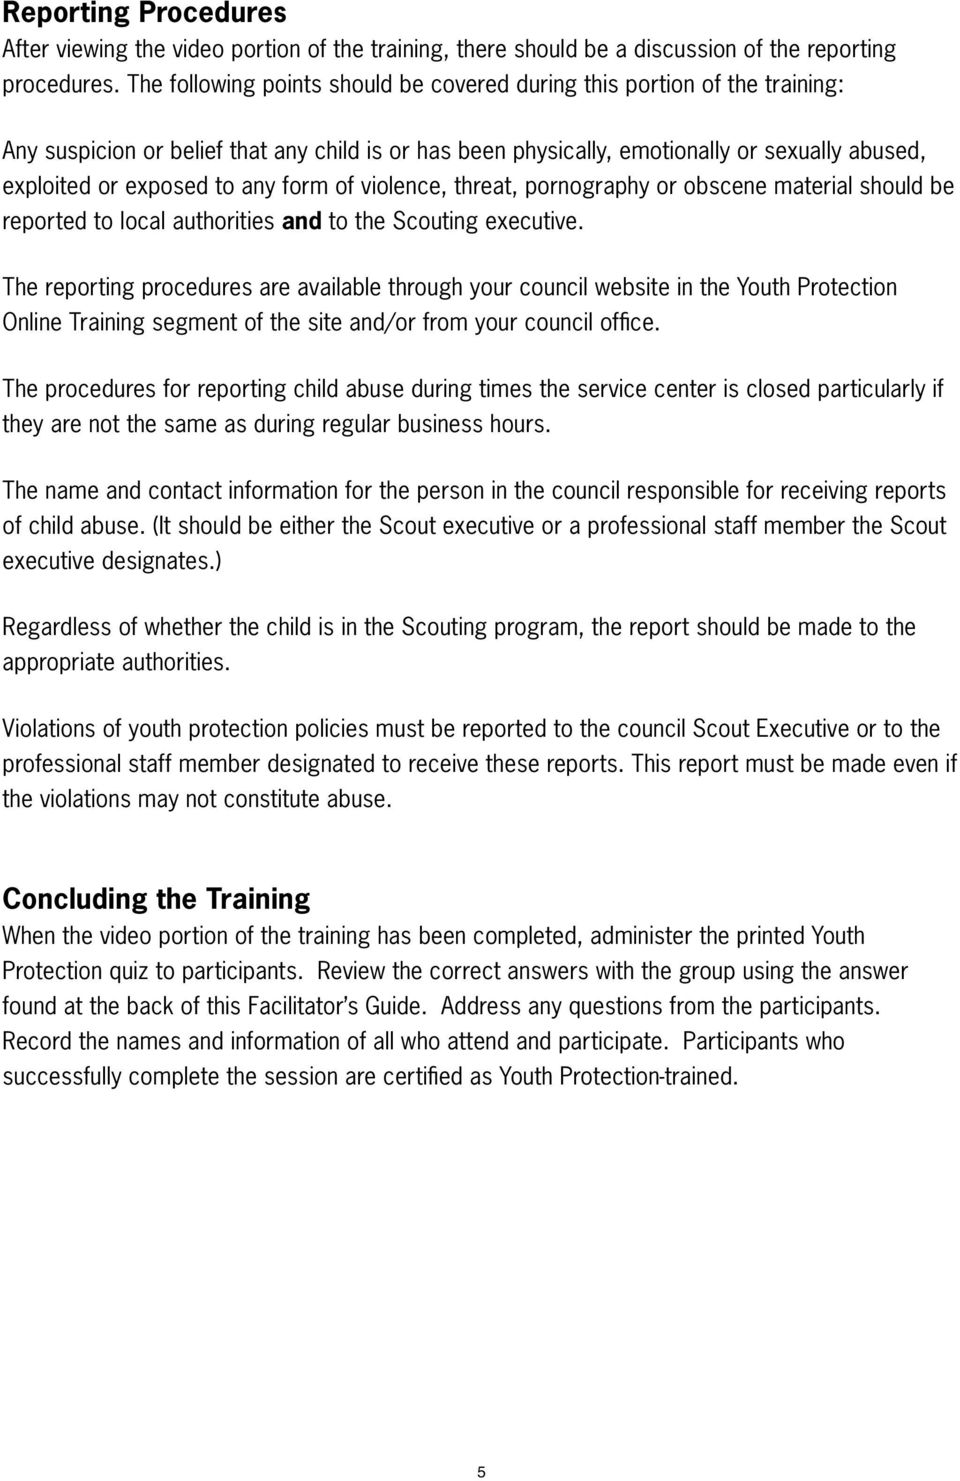 any form of violence, threat, pornography or obscene material should be reported to local authorities and to the Scouting executive.